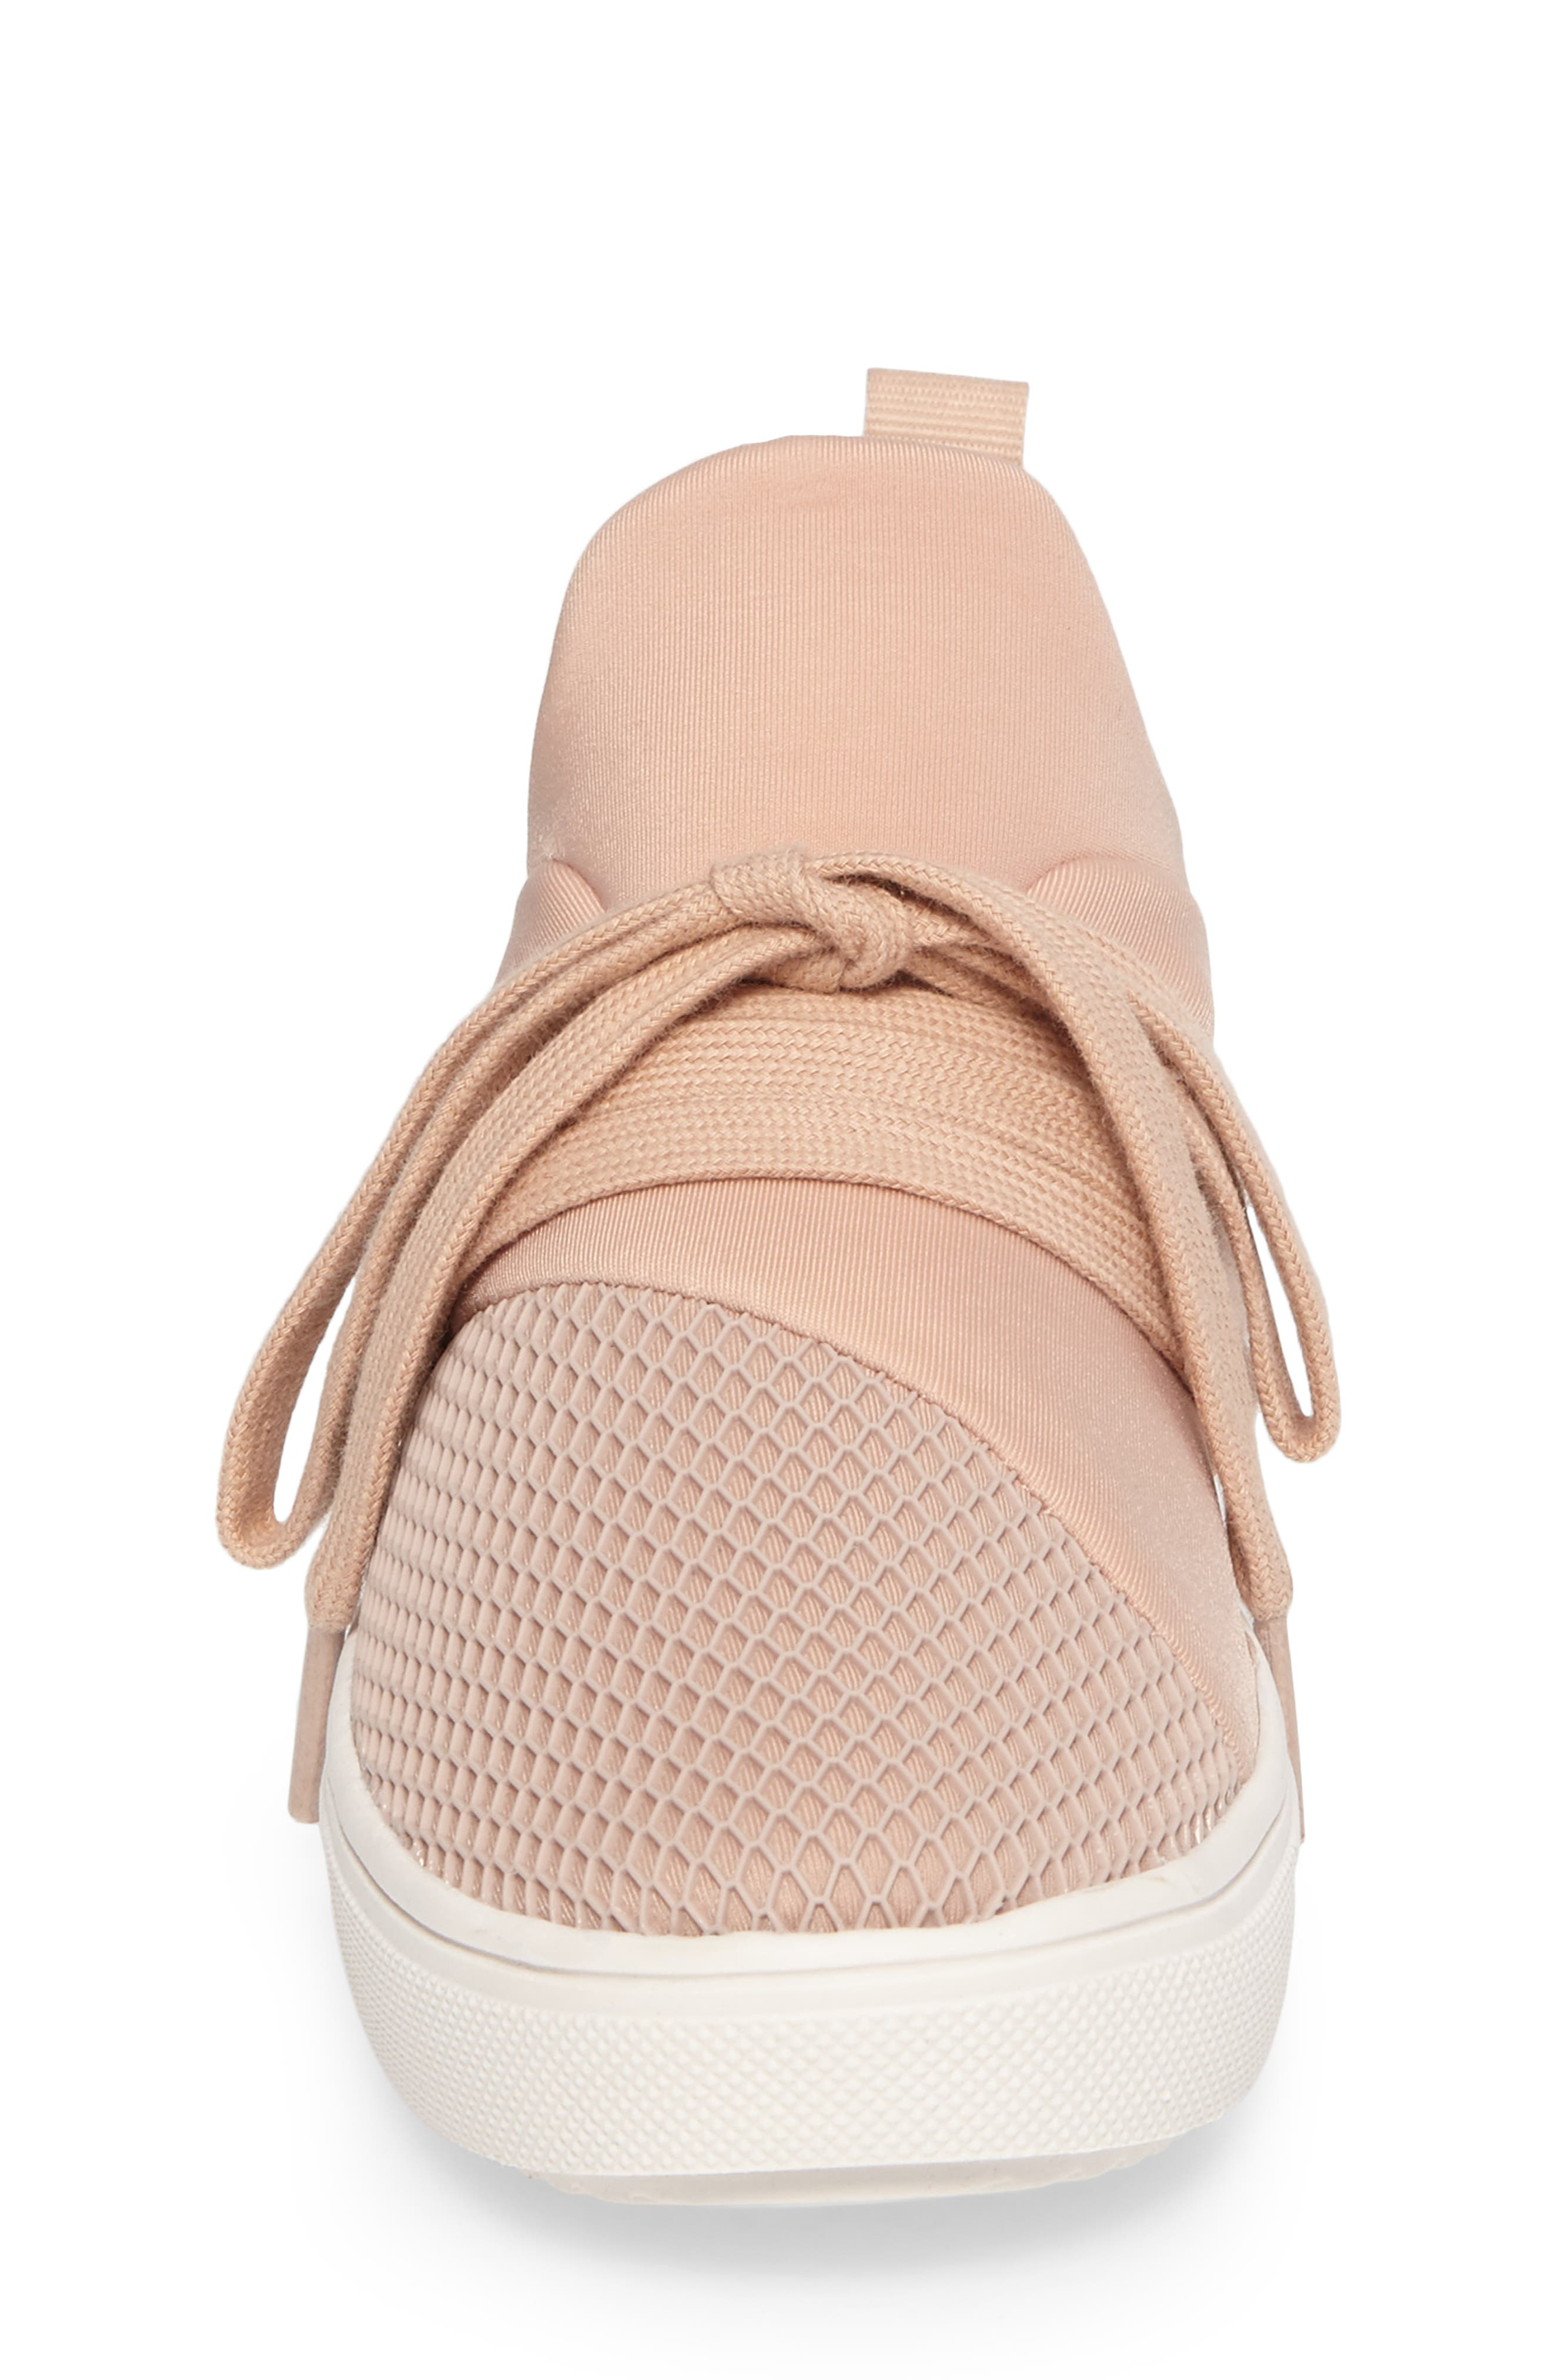 Lancer Mesh Sock-Fit Sneaker,                             Alternate thumbnail 5, color,                             Blush